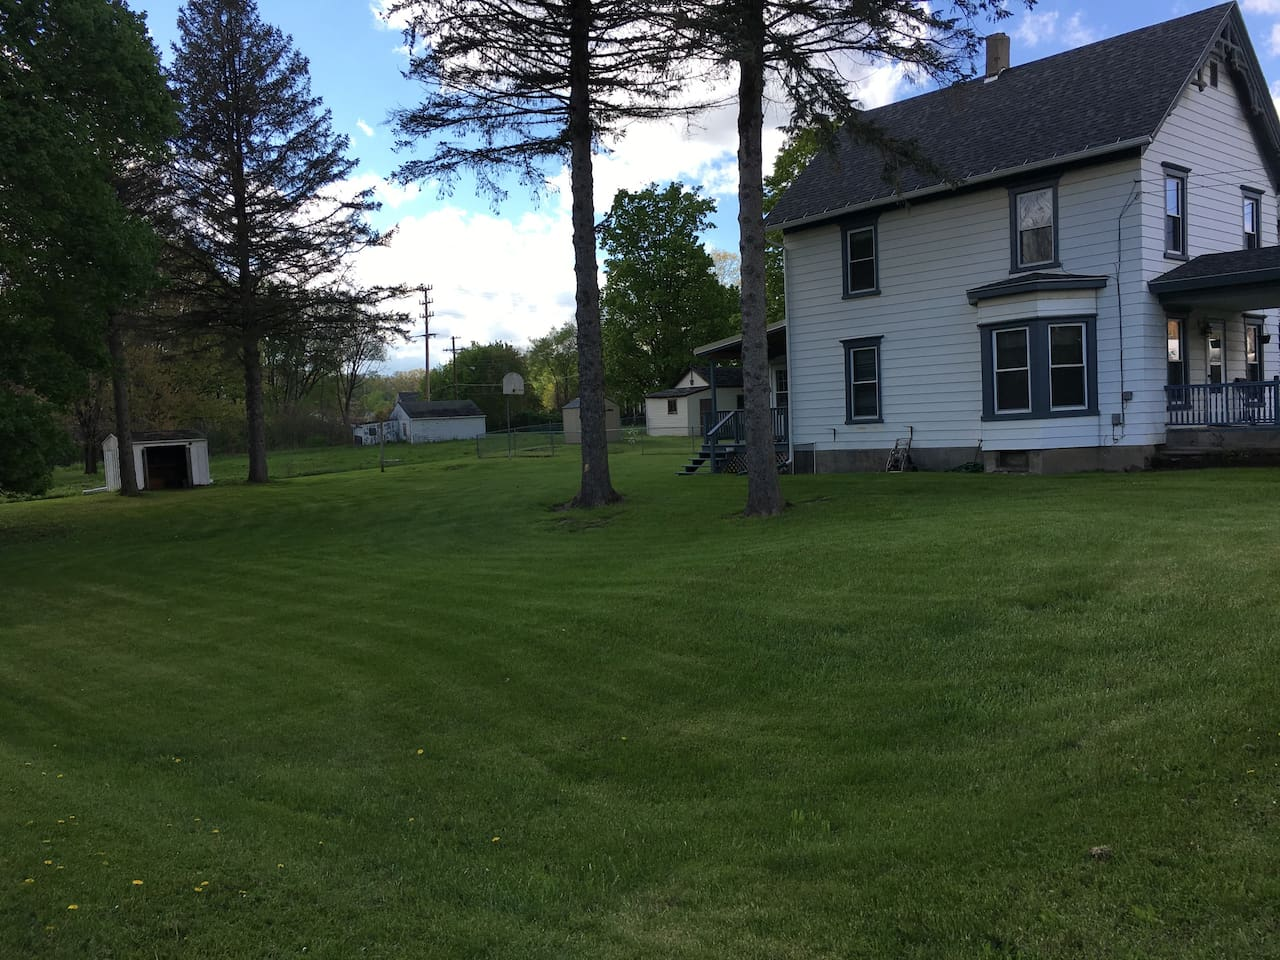 Large yard perfect for outdoor fun! Front porch too!